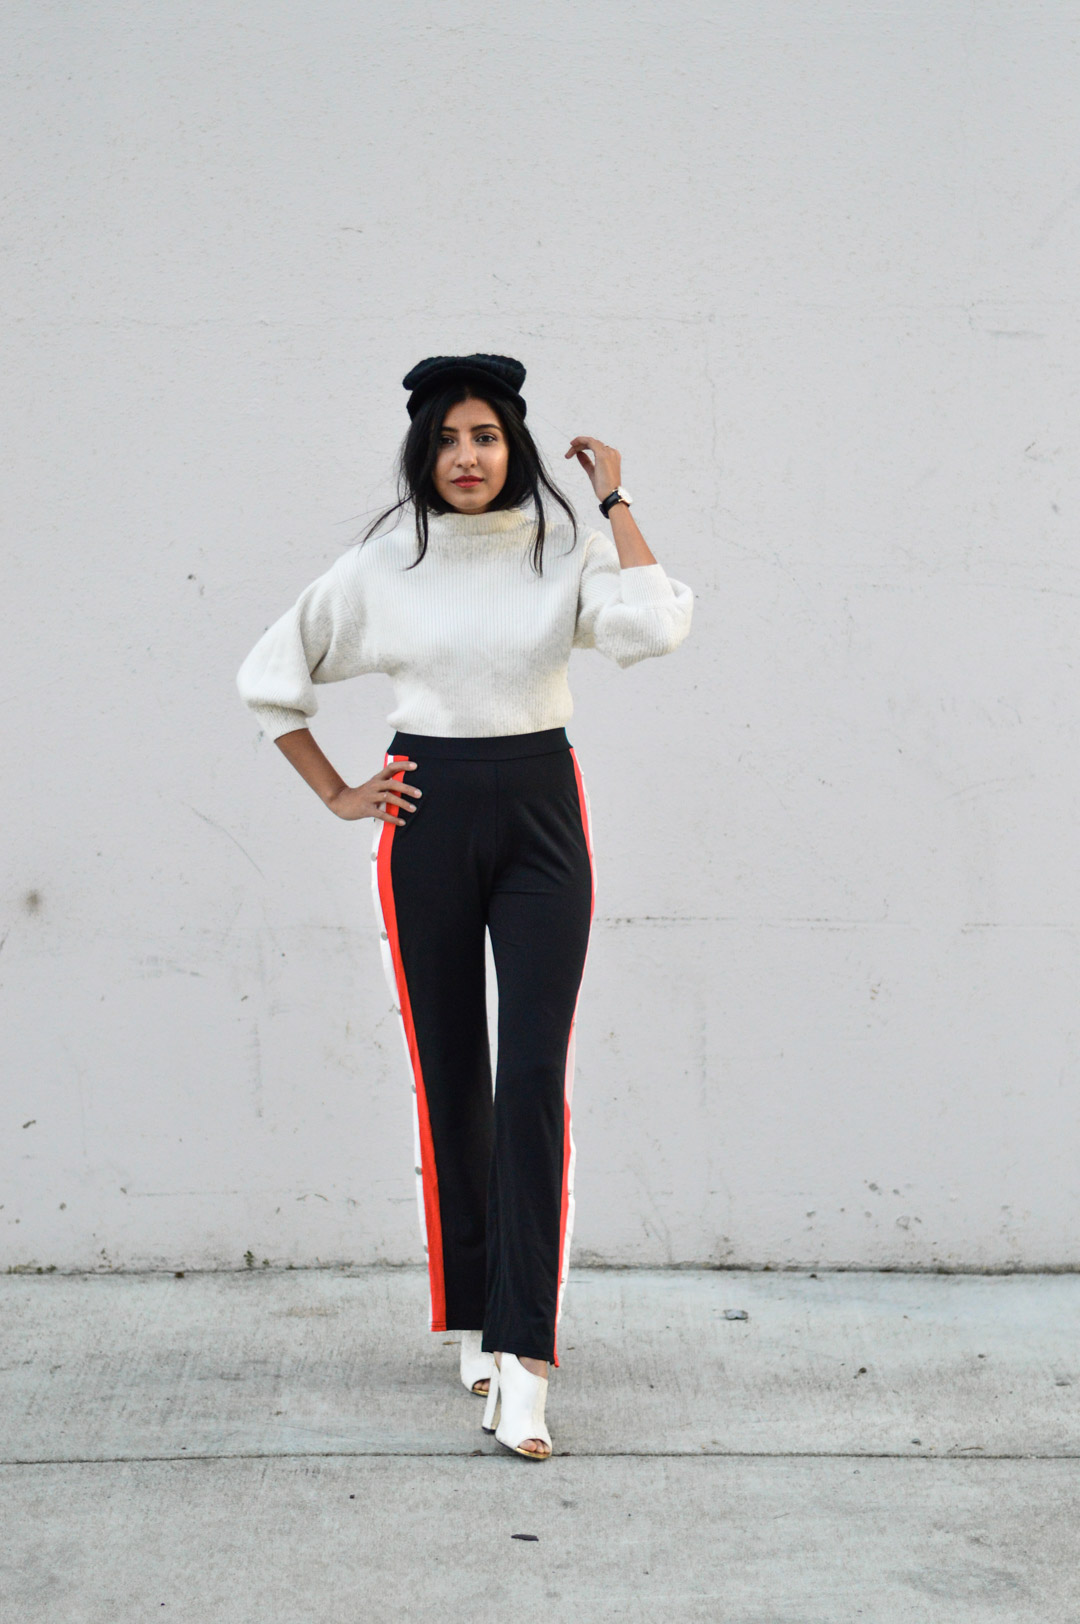 parisian-chic-tearaway-pants-turtleneck-sweater-blogger-outfit 1